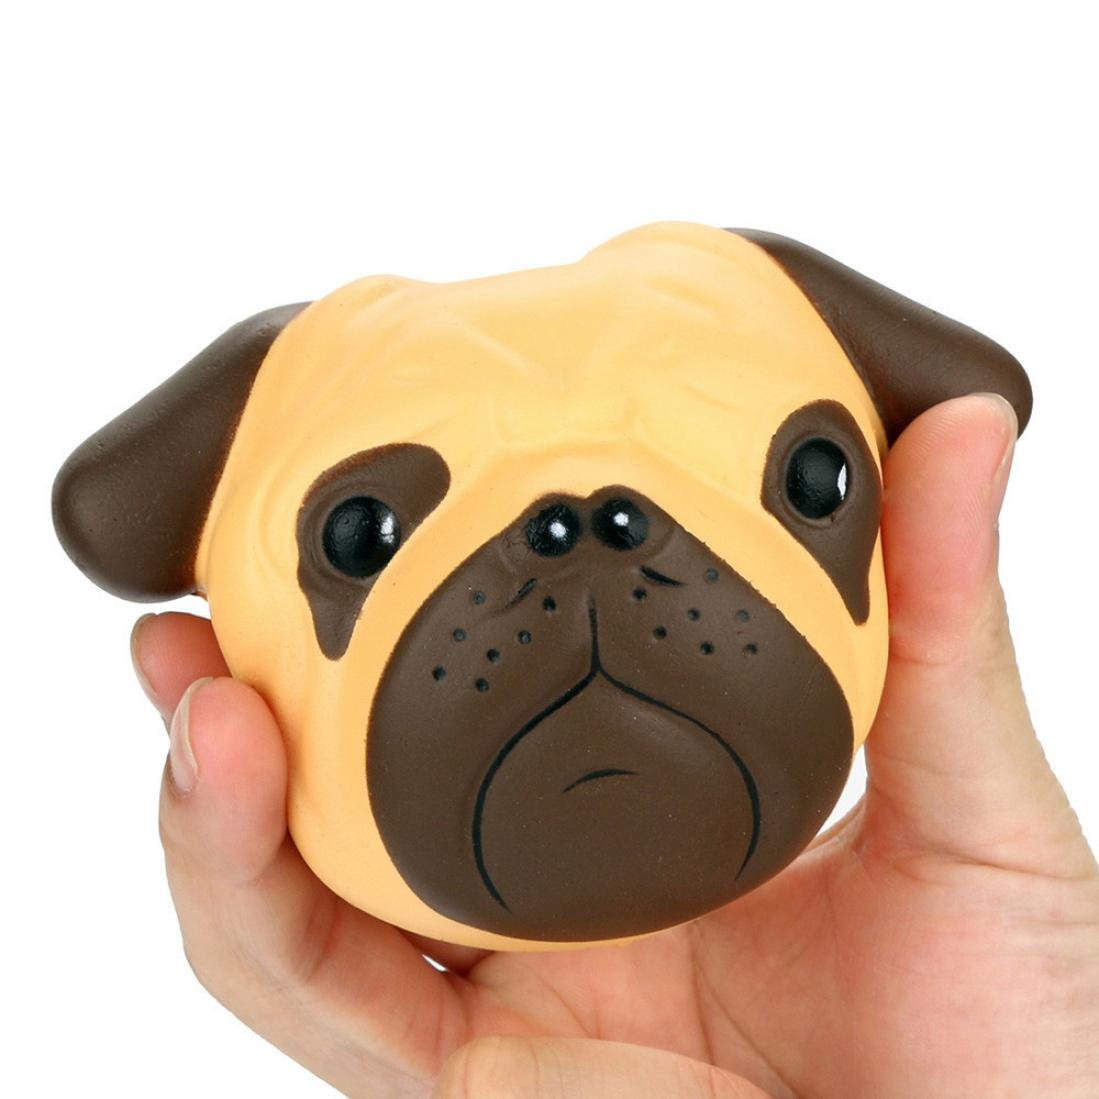 UPXIANG Squishy Dog, Jumbo Squishies Toys Scented Slow Rising Decompression Toys Stress Relief Toys for Boys Girls Kids Adults Gifts